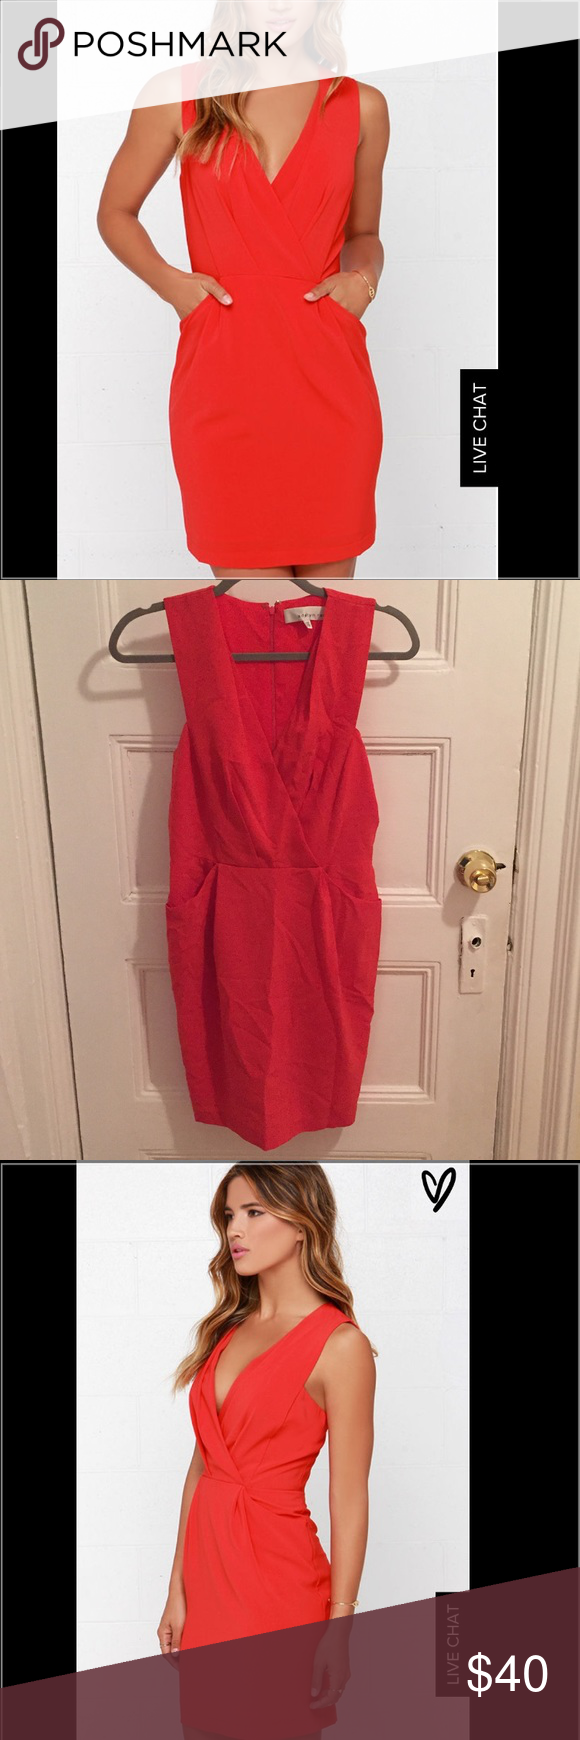 Business and pleasure coral red dress